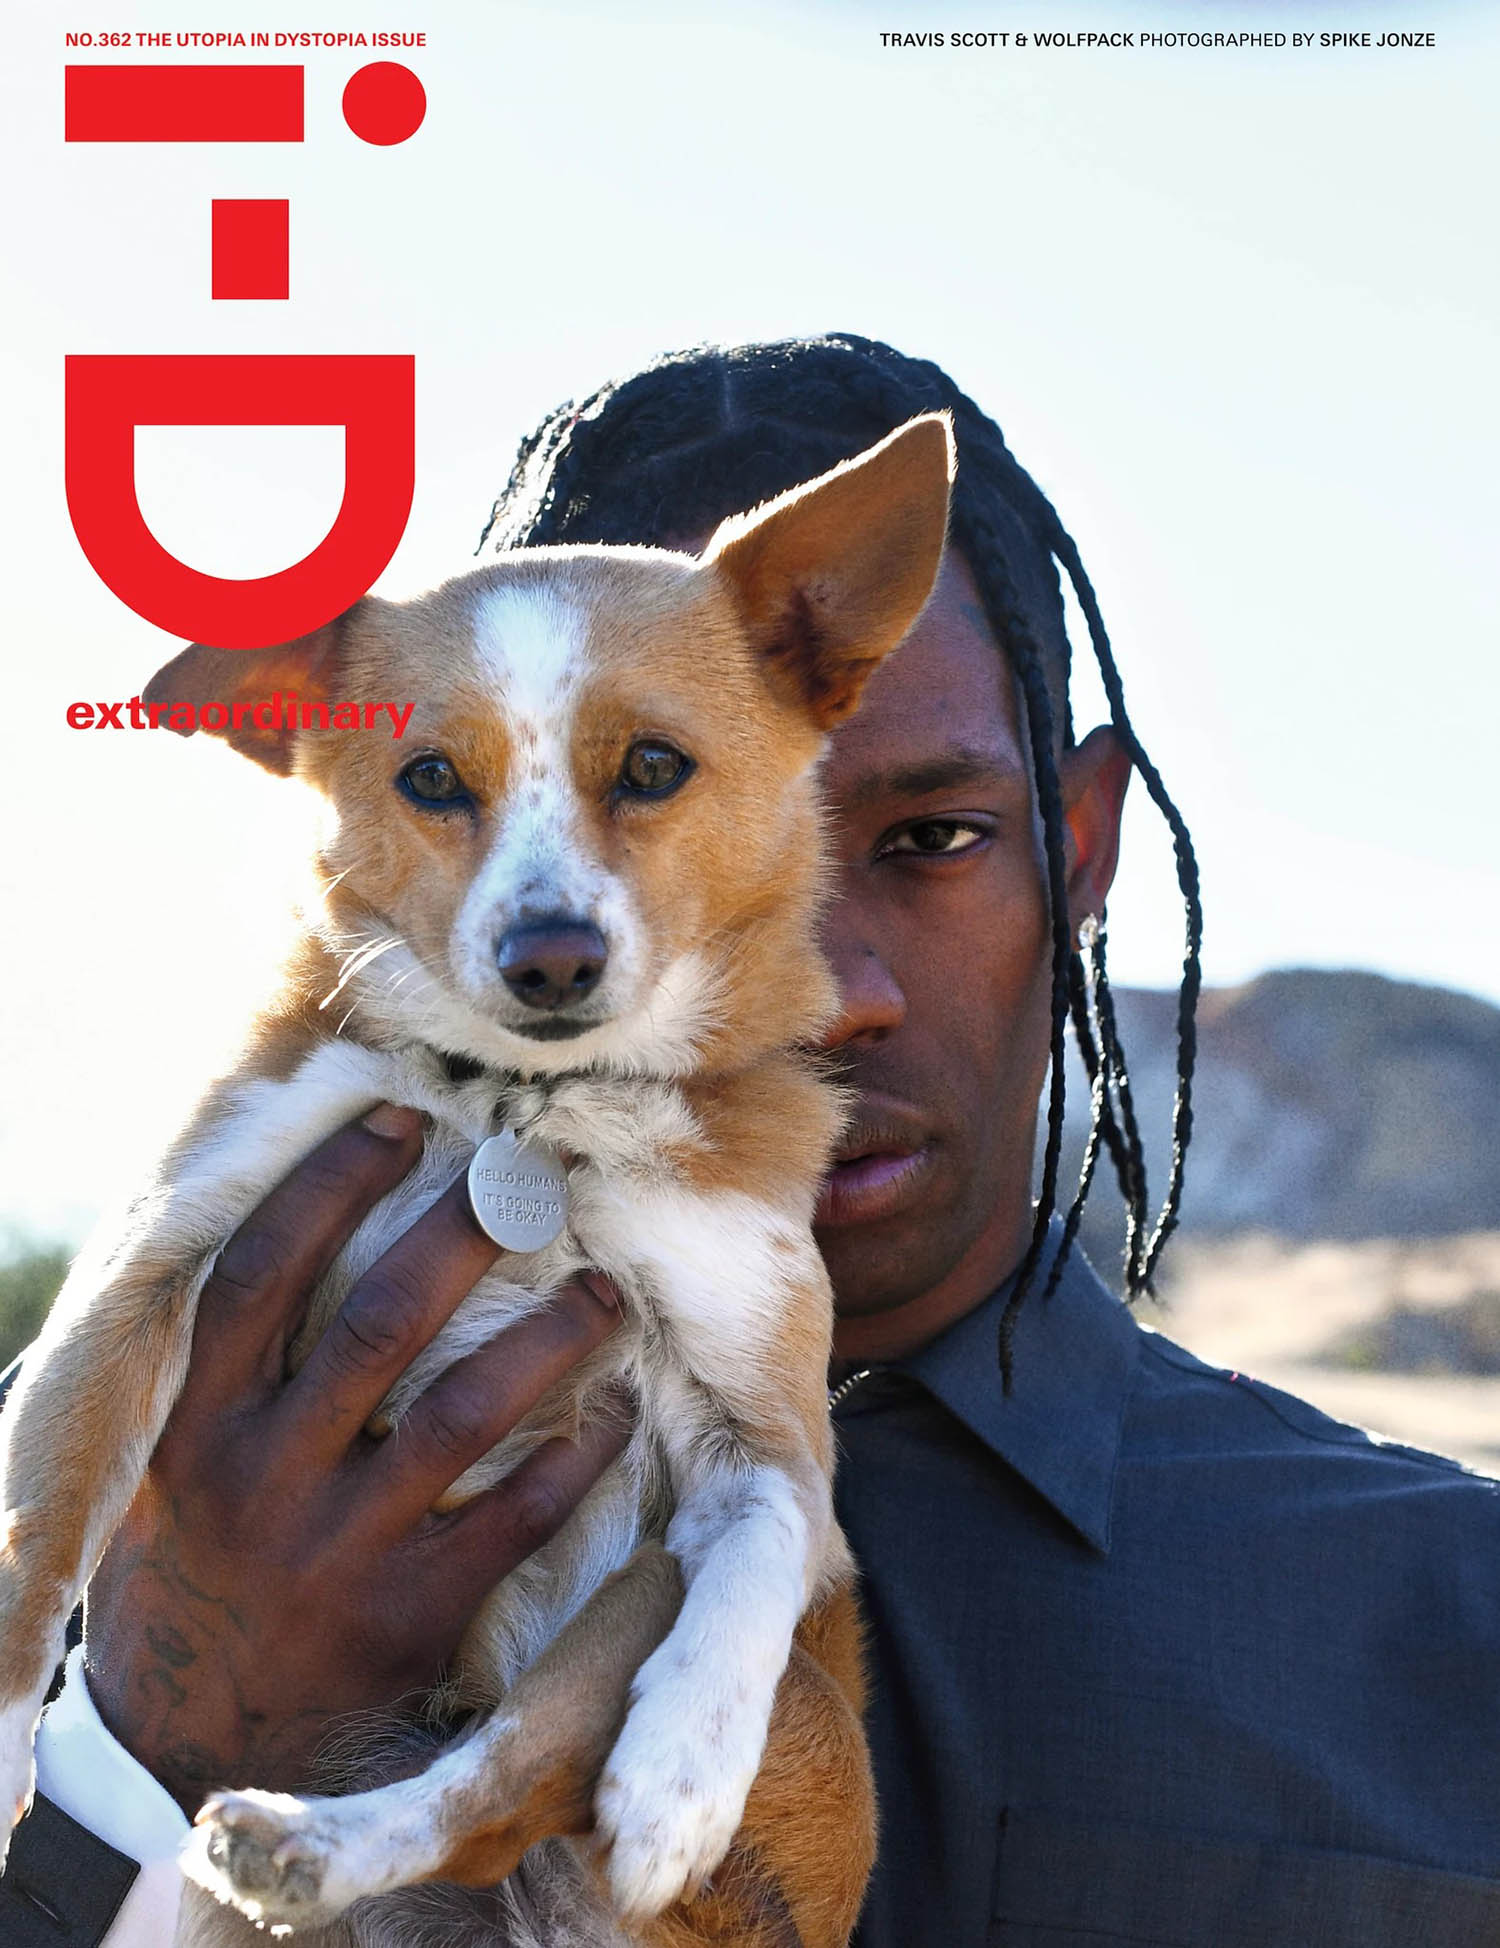 Travis Scott covers i-D Magazine Issue 362 by Spike Jonze